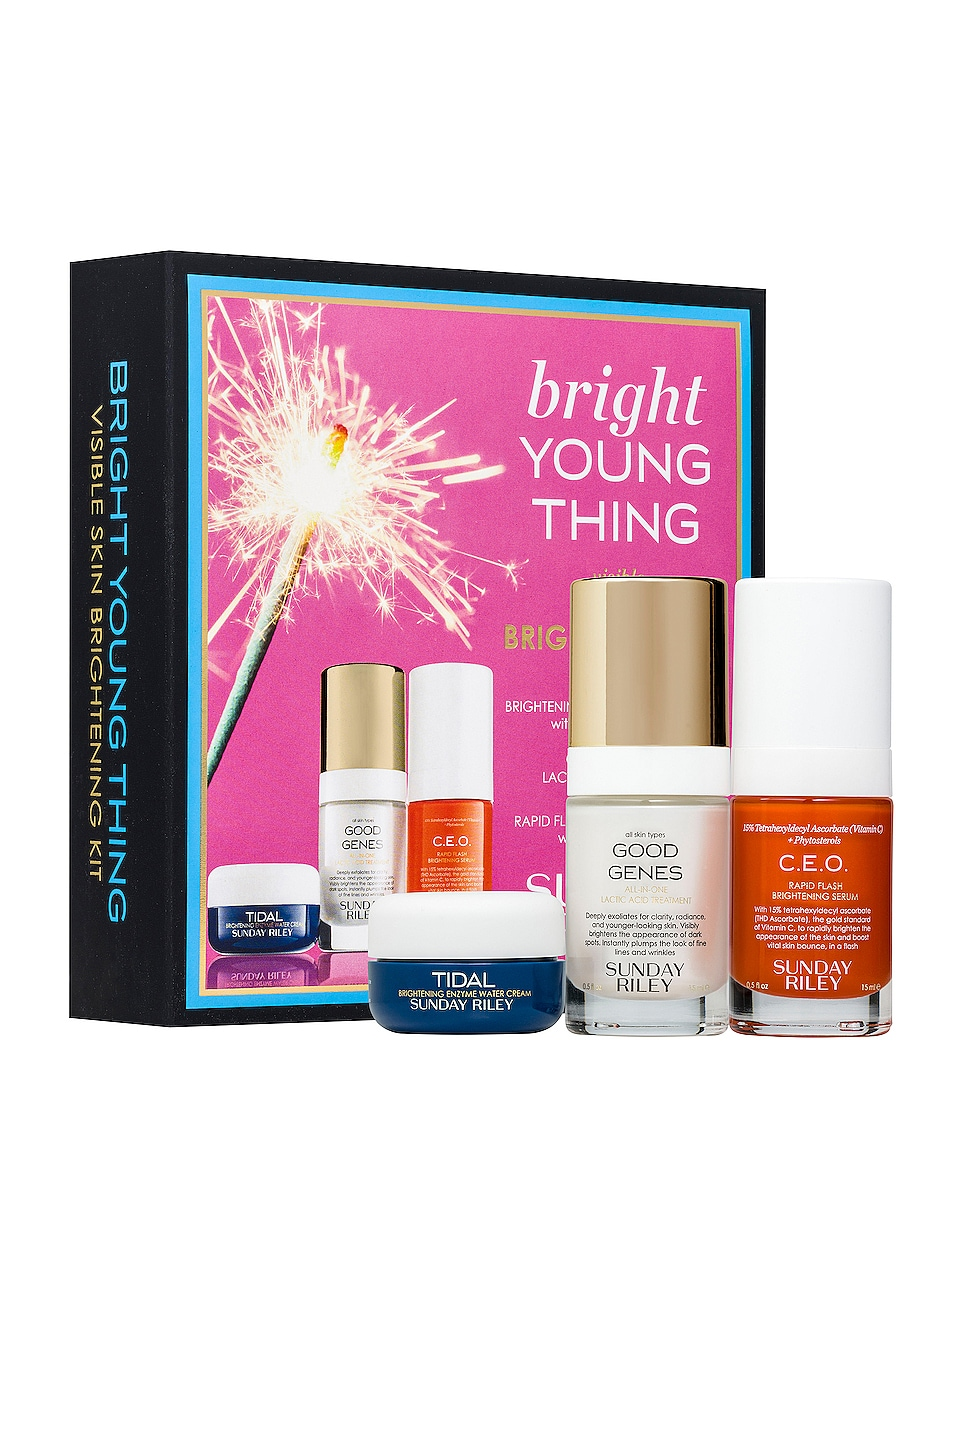 SUNDAY RILEY BRIGHT YOUNG THING KIT